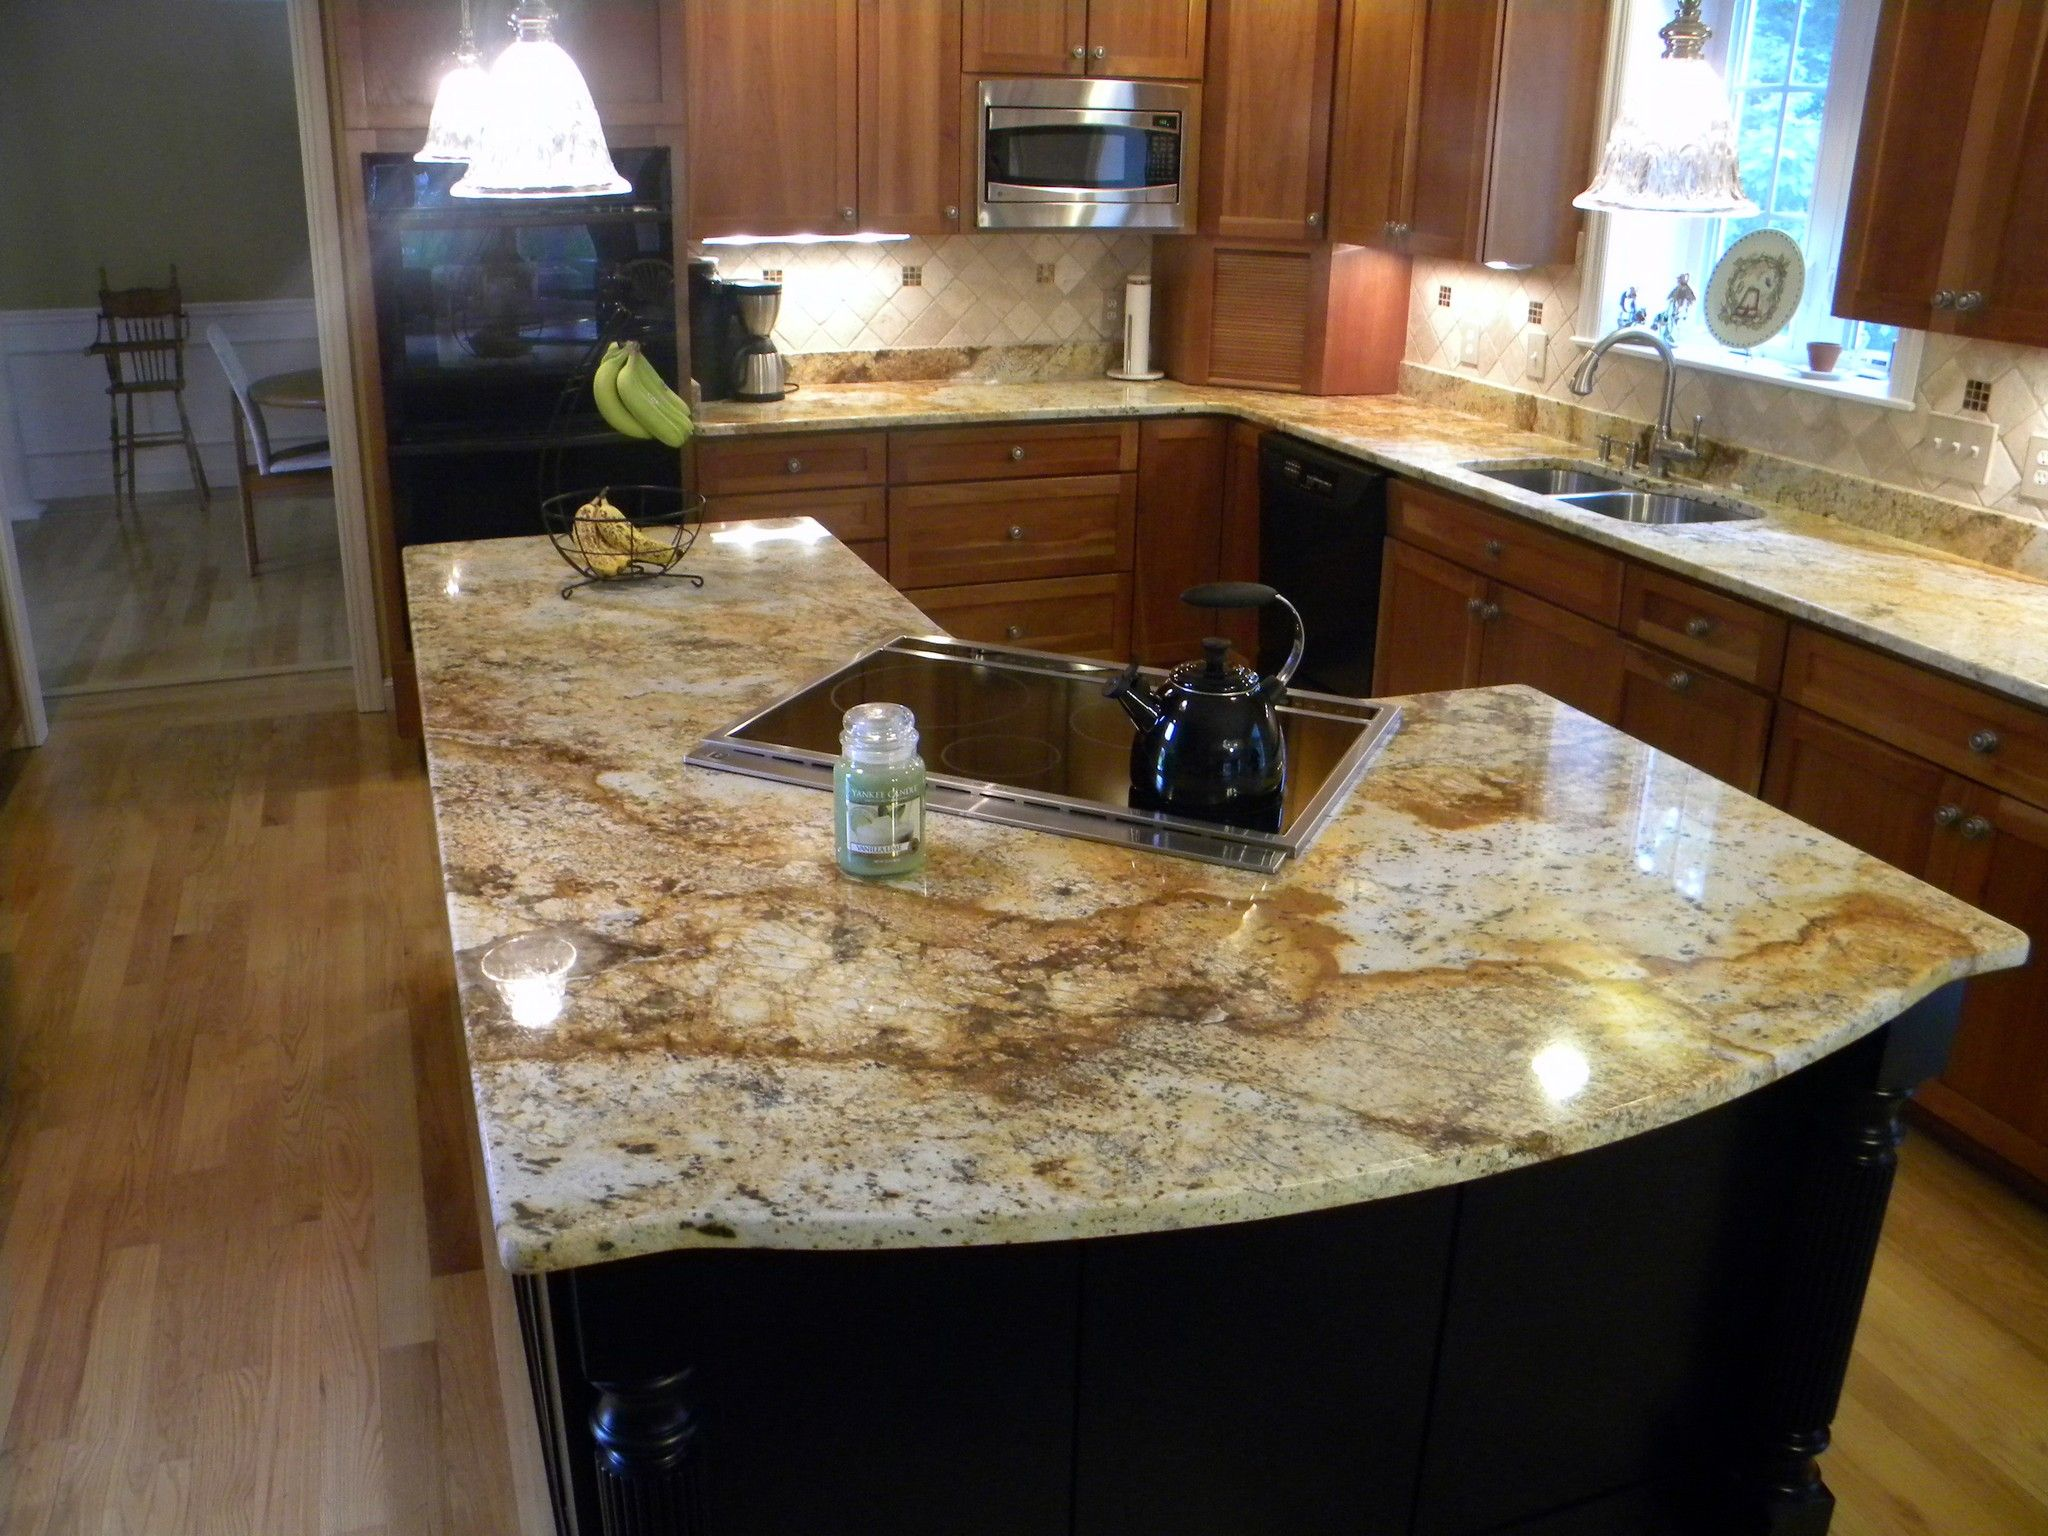 Pin By Olivia Bogle On Home Kitchen Cabinets And Countertops Green Bathroom Gold Granite Countertops